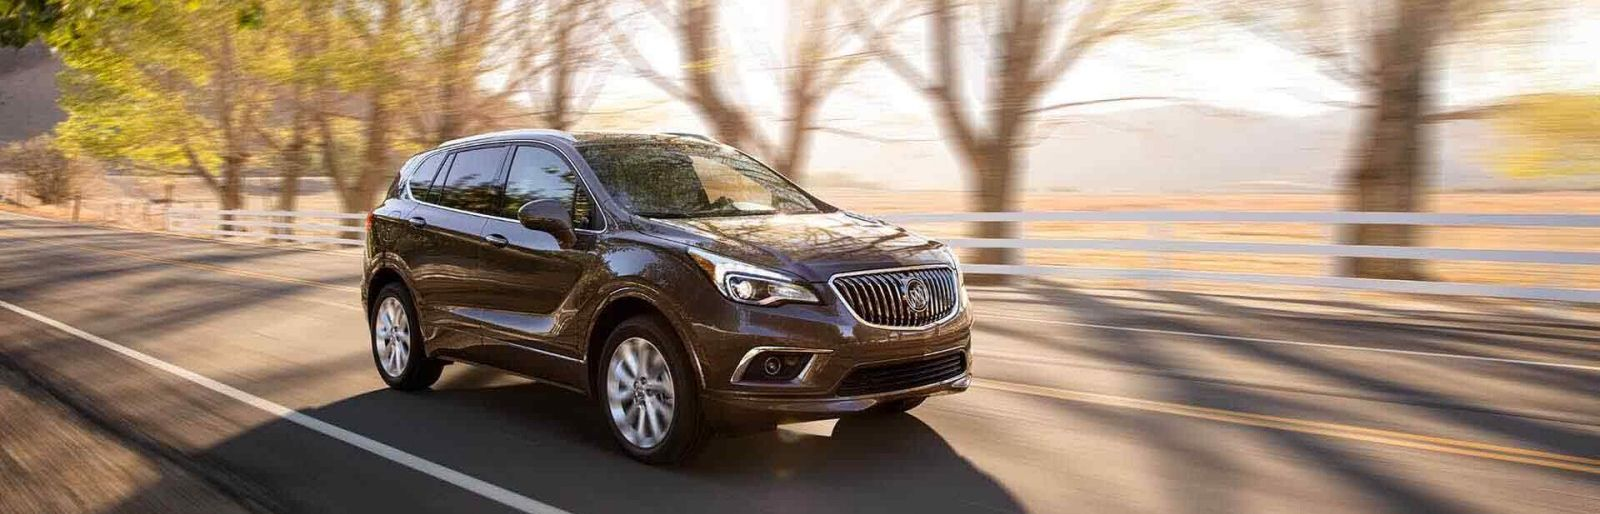 2017 Buick Envision for Sale near Denver, CO